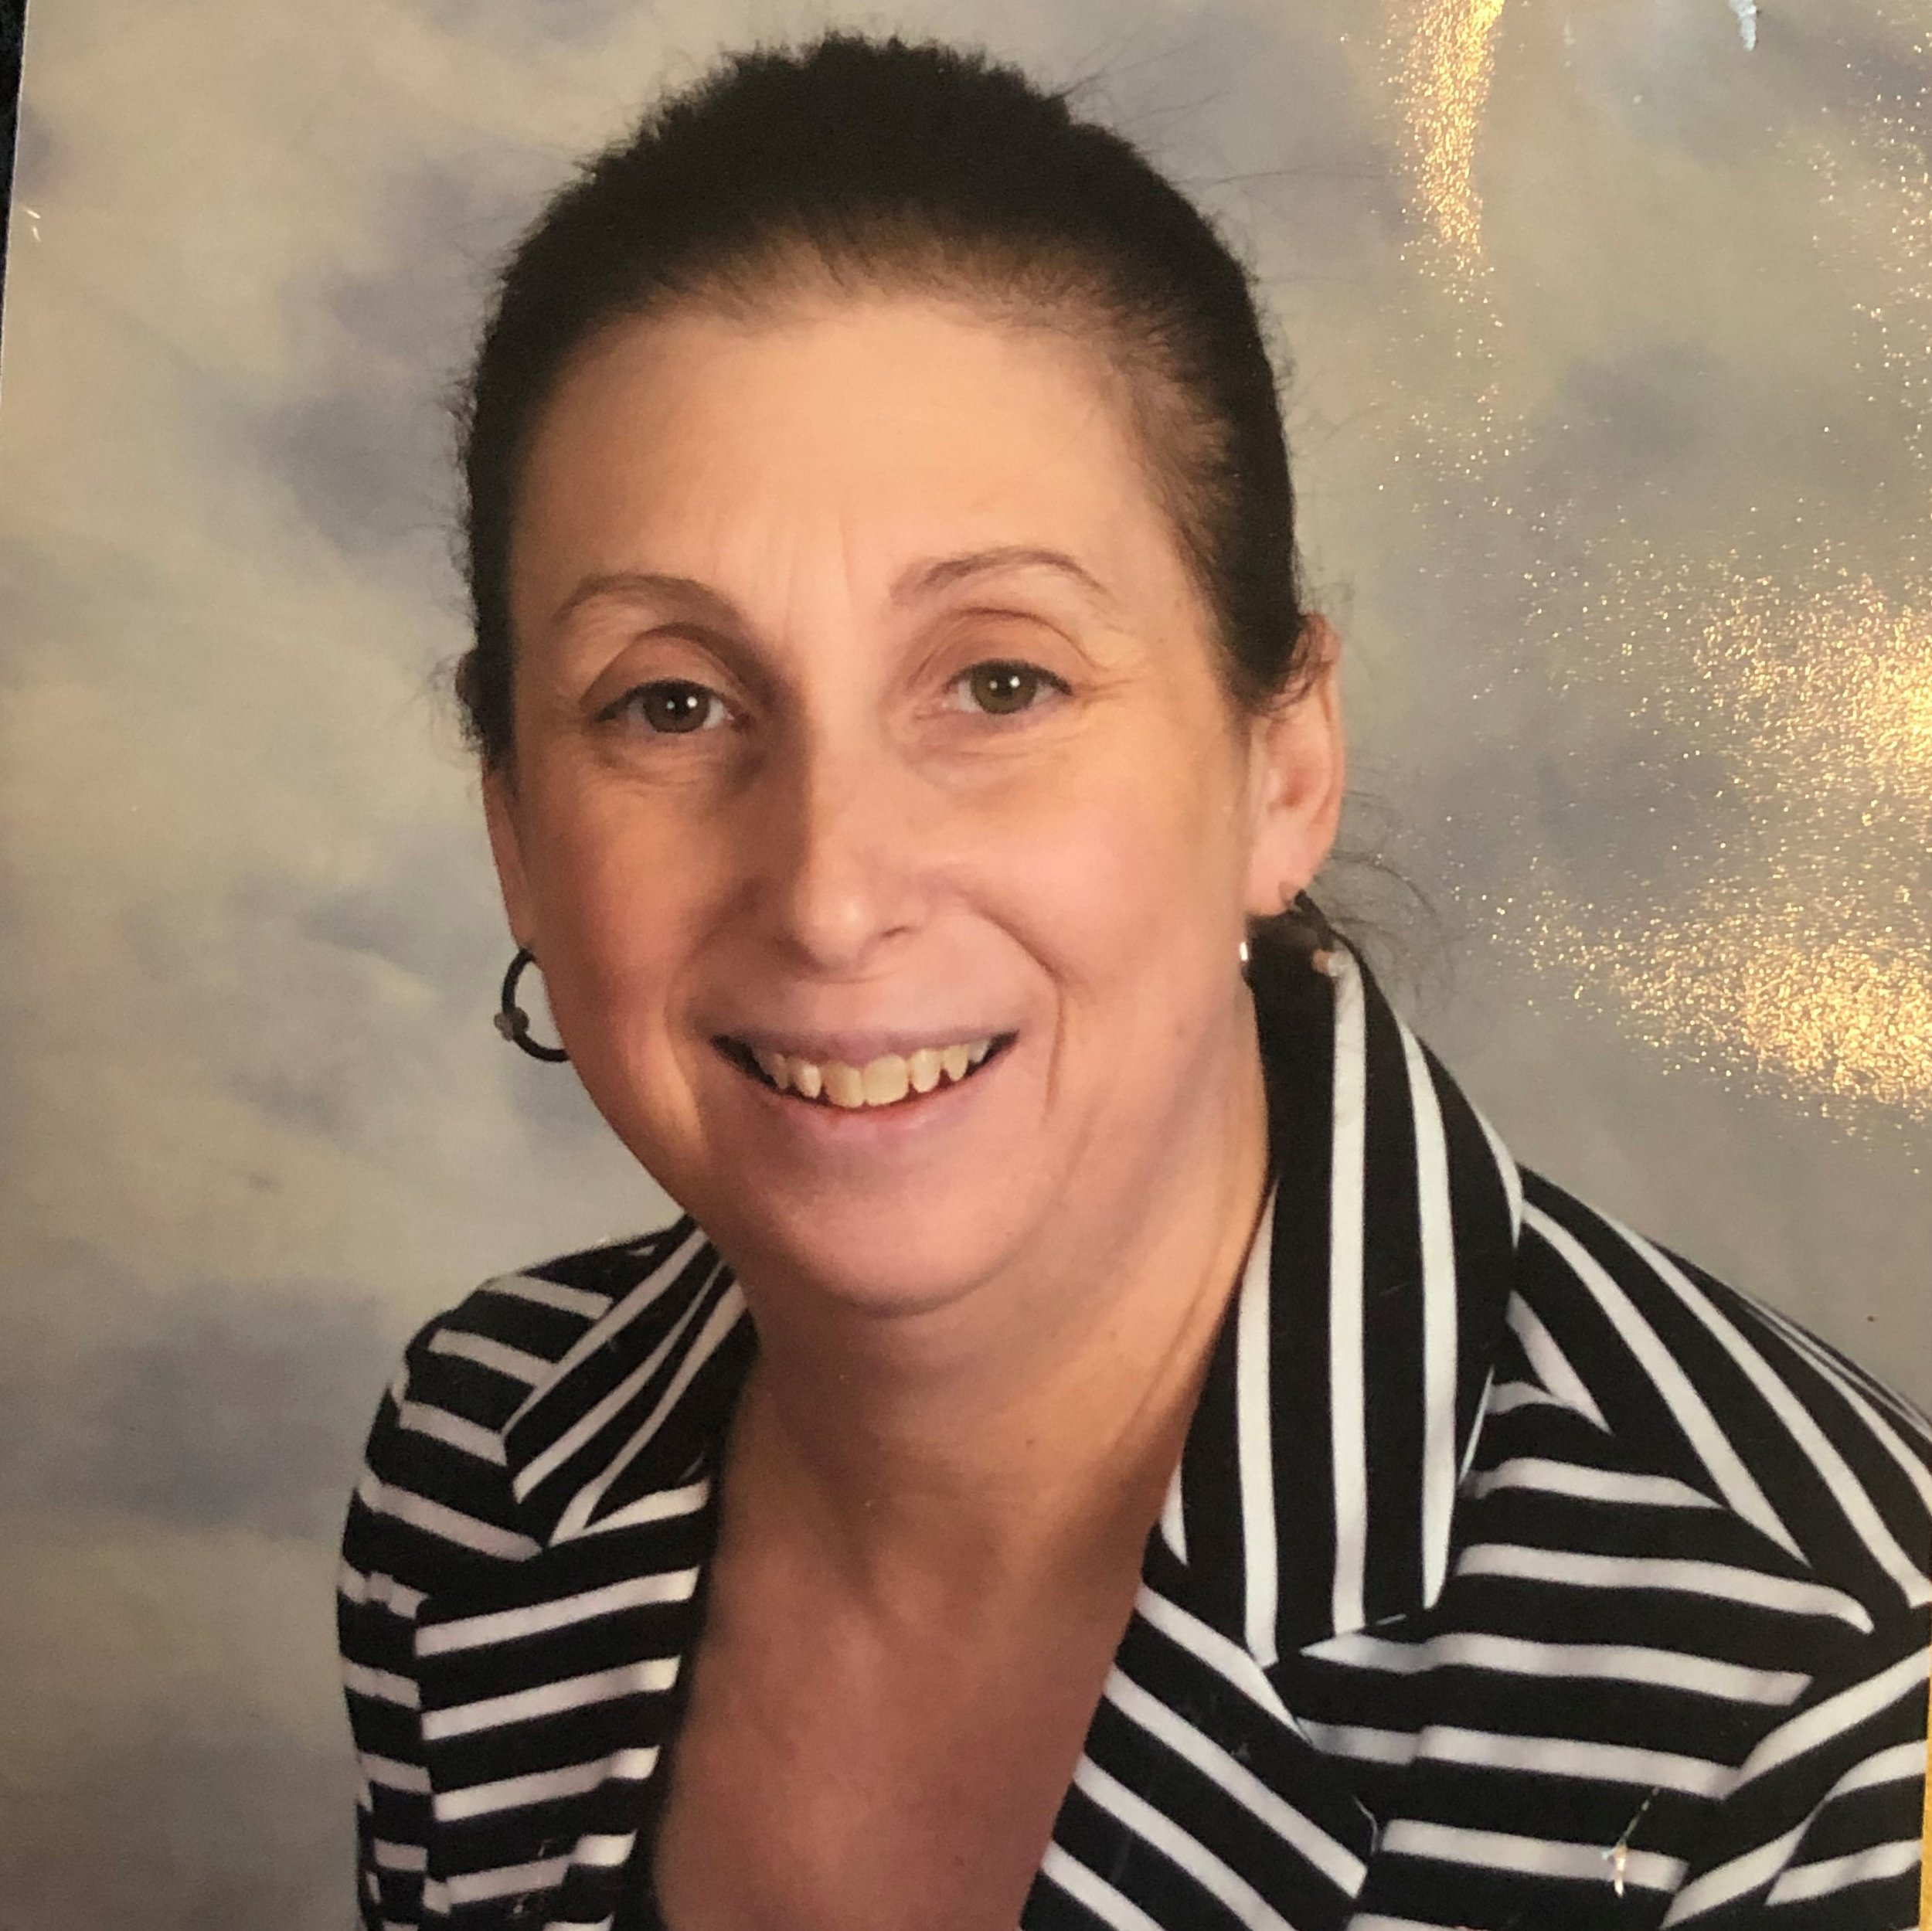 - Melissa Levin - DirectorMelissa has been in the field of Early Childhood Education since 1986. She received her Bachelor's in Early Childhood Education from Wheelock College. Melissa is passionate about animal advocacy, a Red Sox fan and loves her three cats Fenway, Lucy and Lulu.